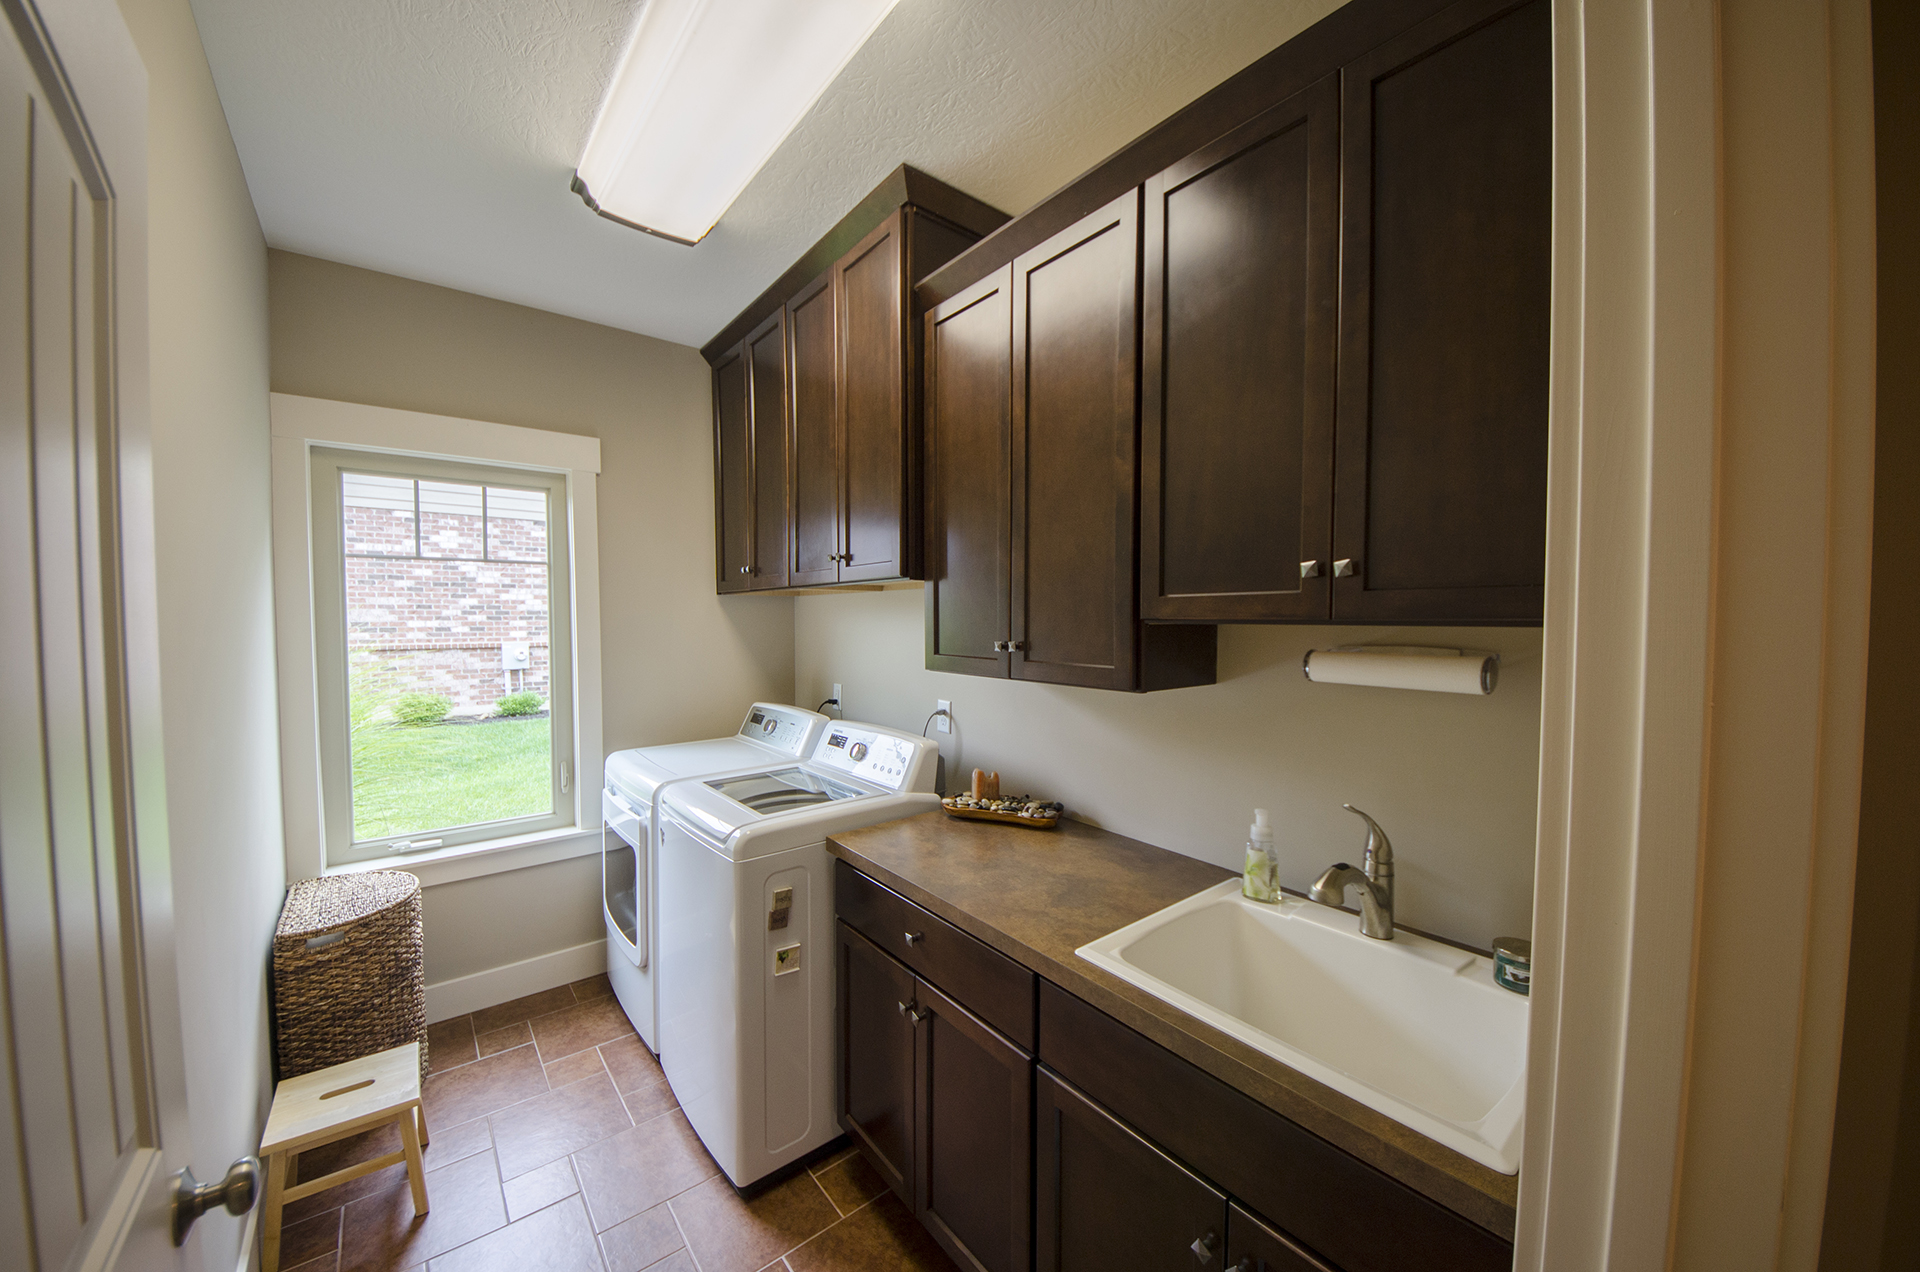 A Custom Laundry Room By Design Homes.